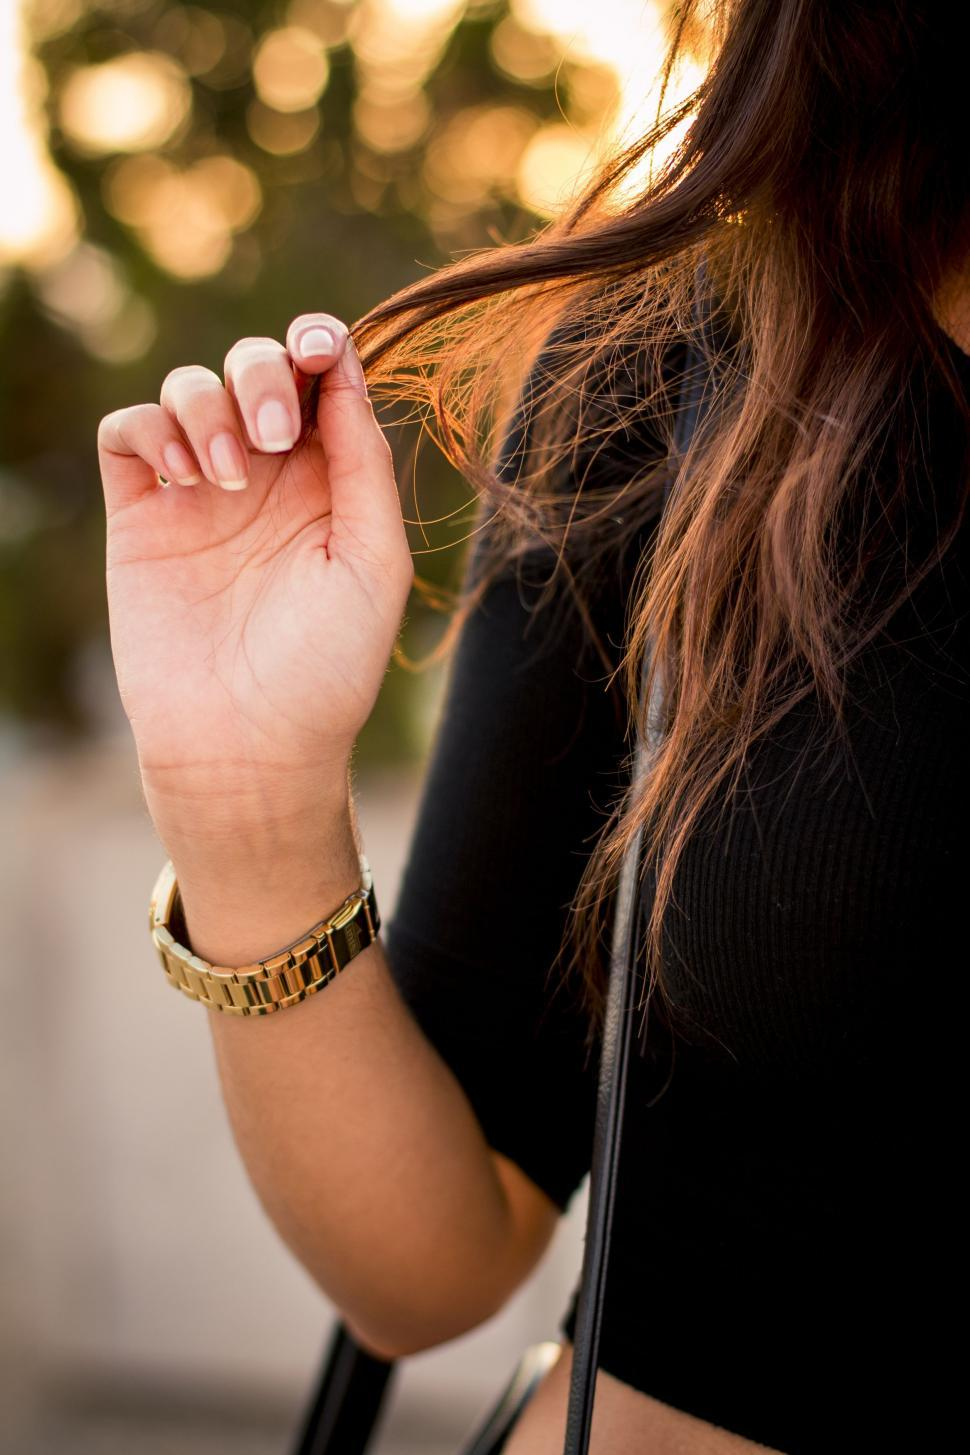 Download Free Stock Photo of Female hand with wrist watch